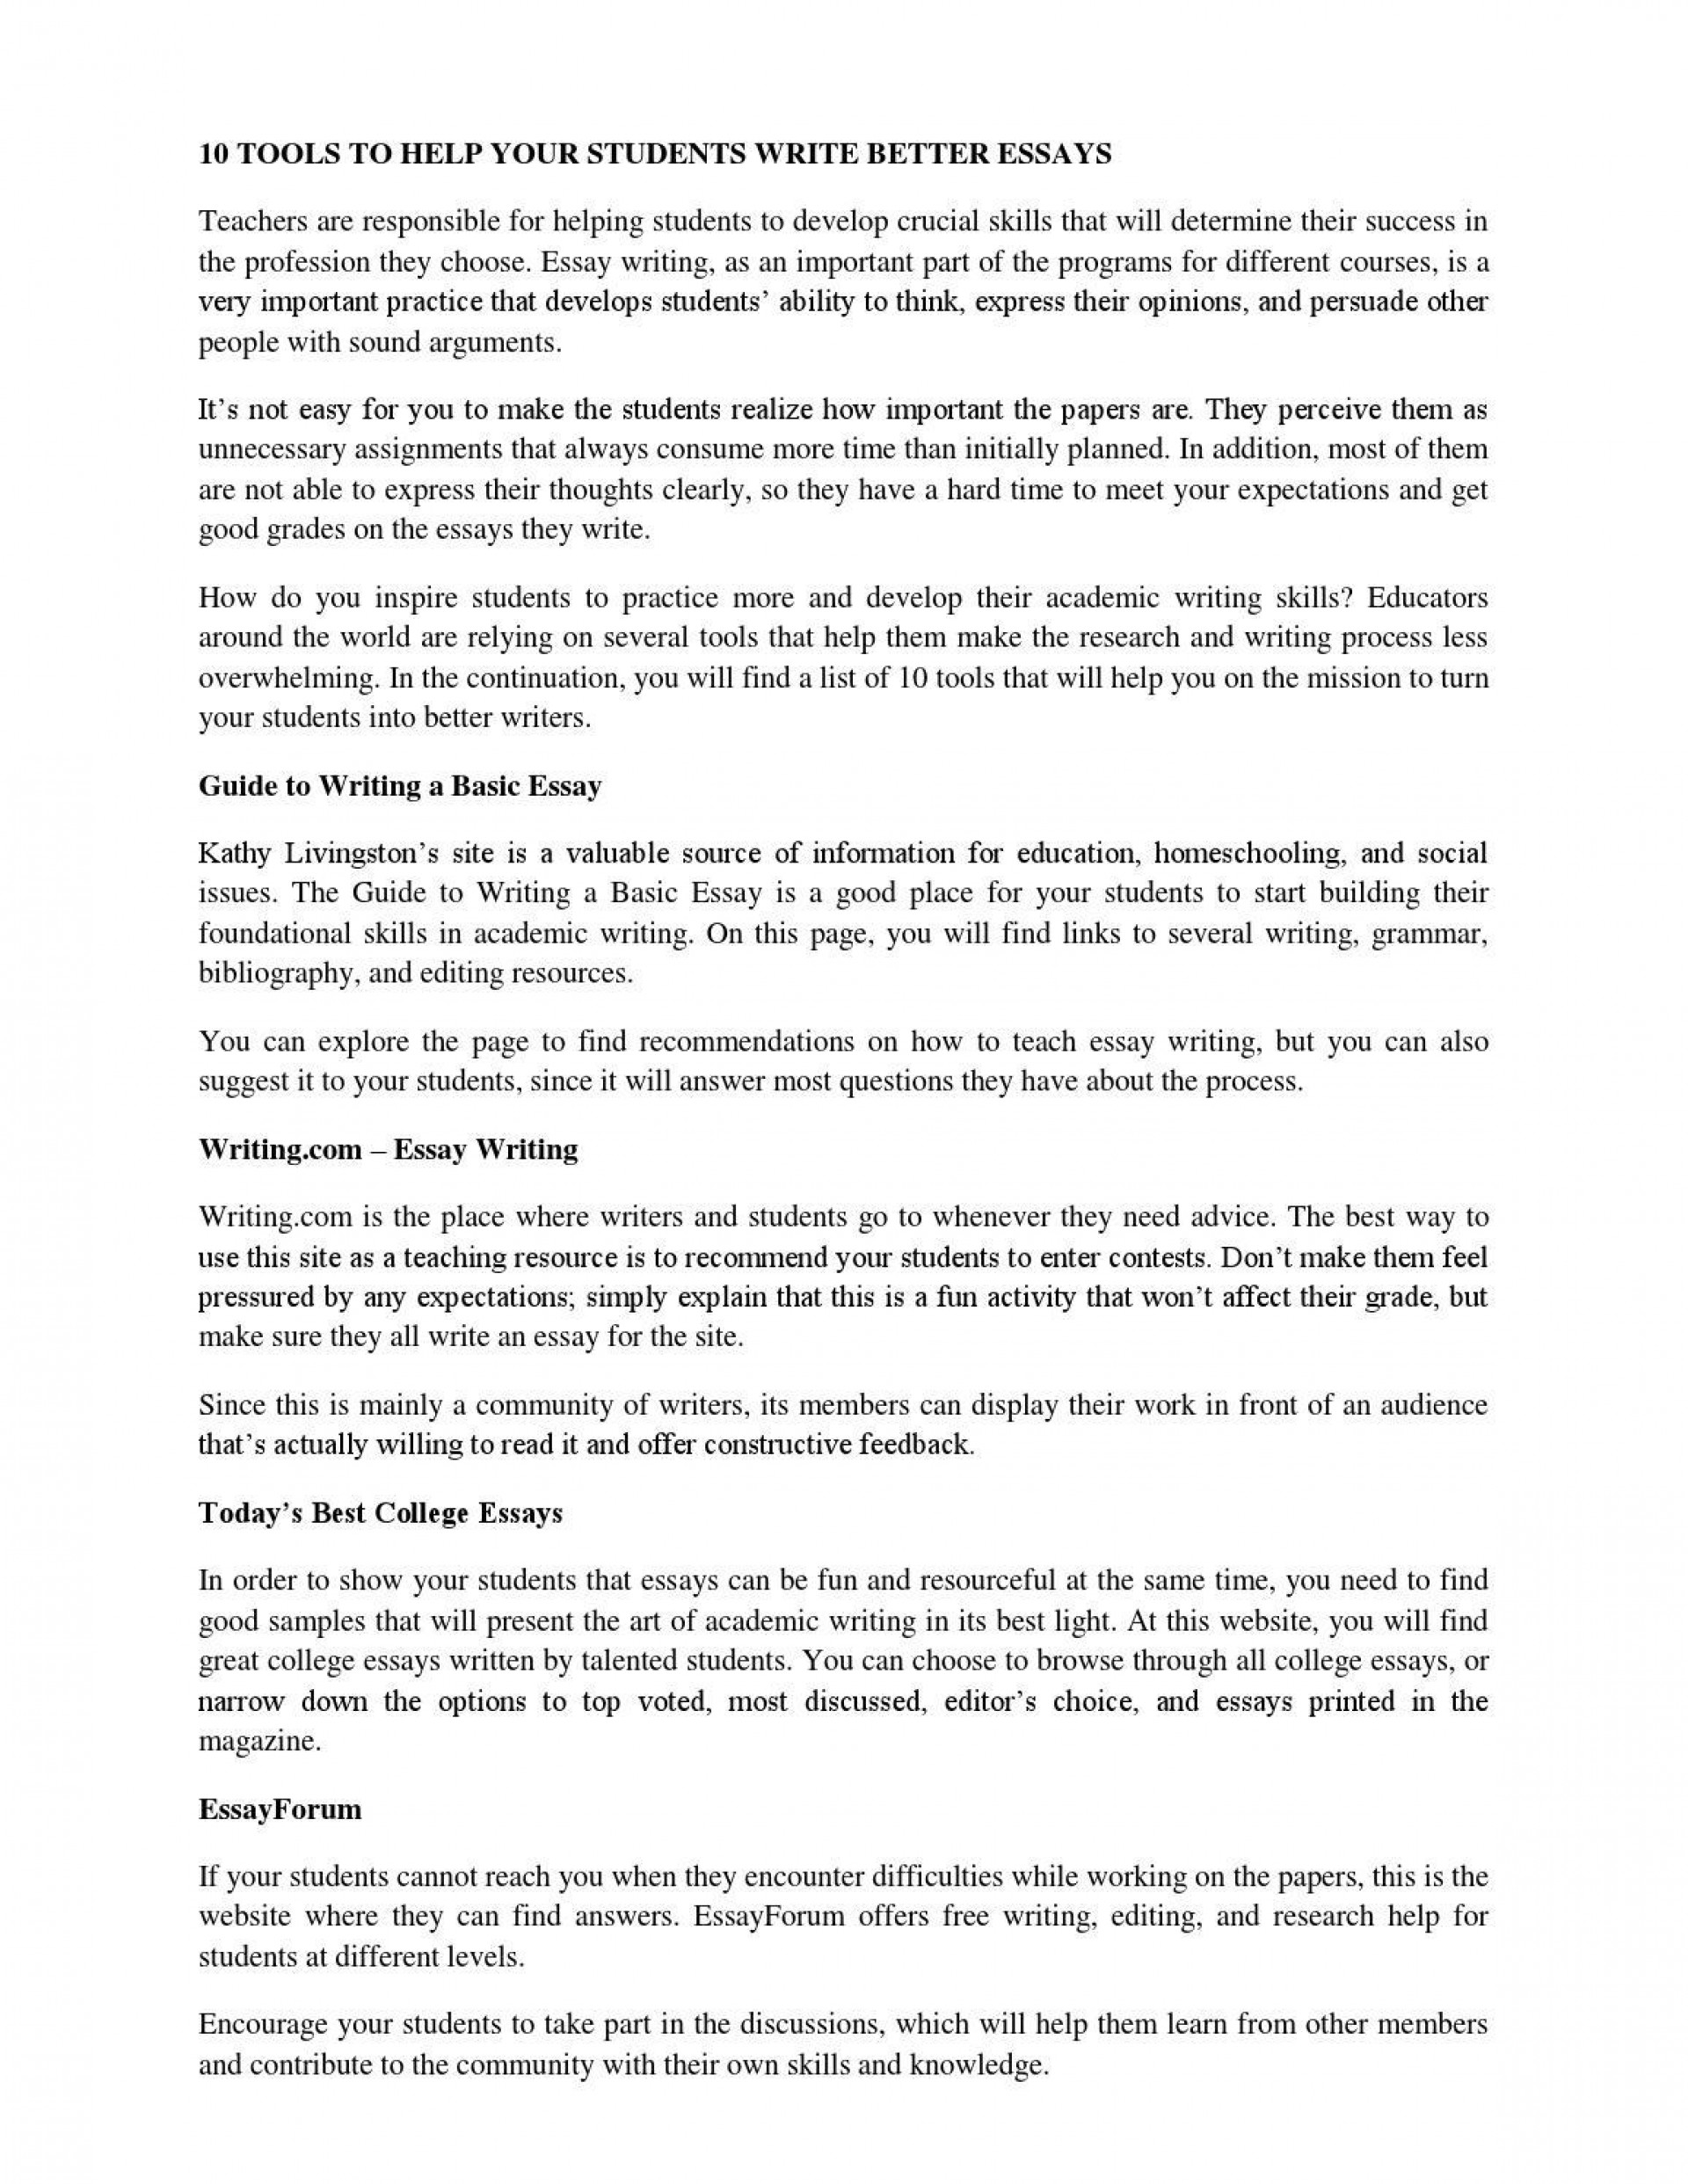 002 Research Paper Websites Essay Writing Reviews For Students Editing Free Page Example Formidable Best Good Sources Papers Download 1920